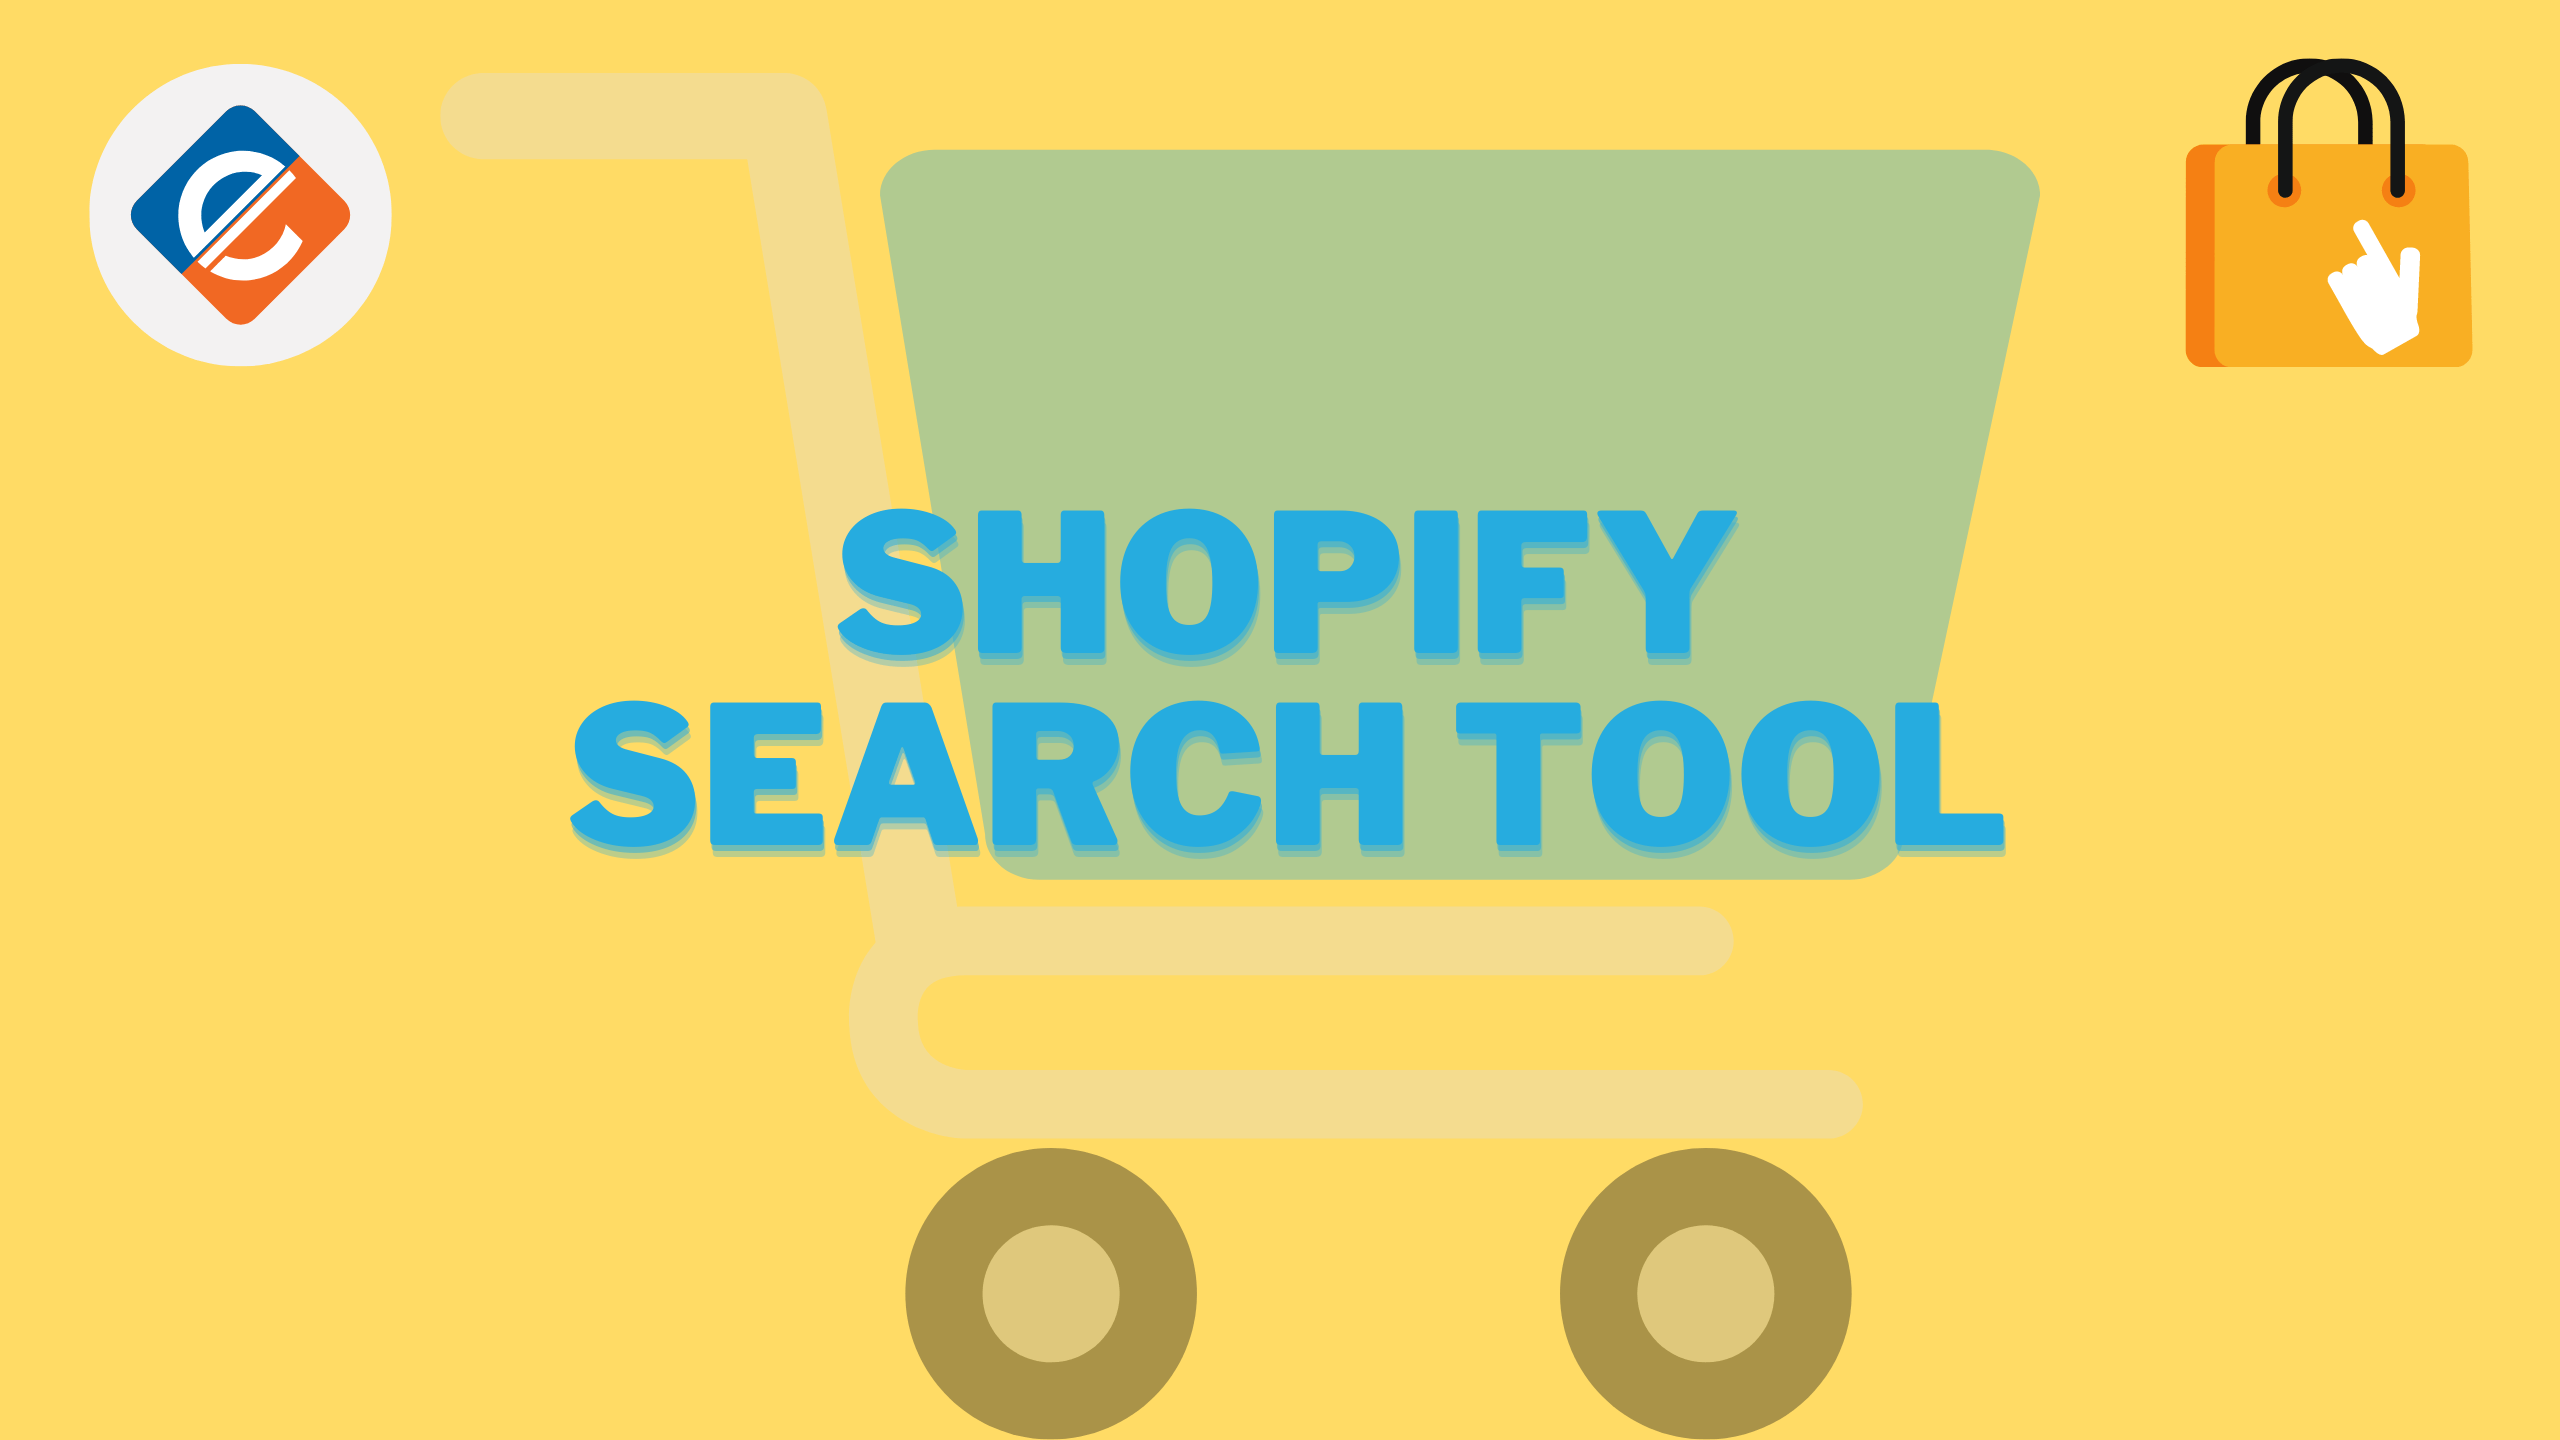 Shopify Search tool